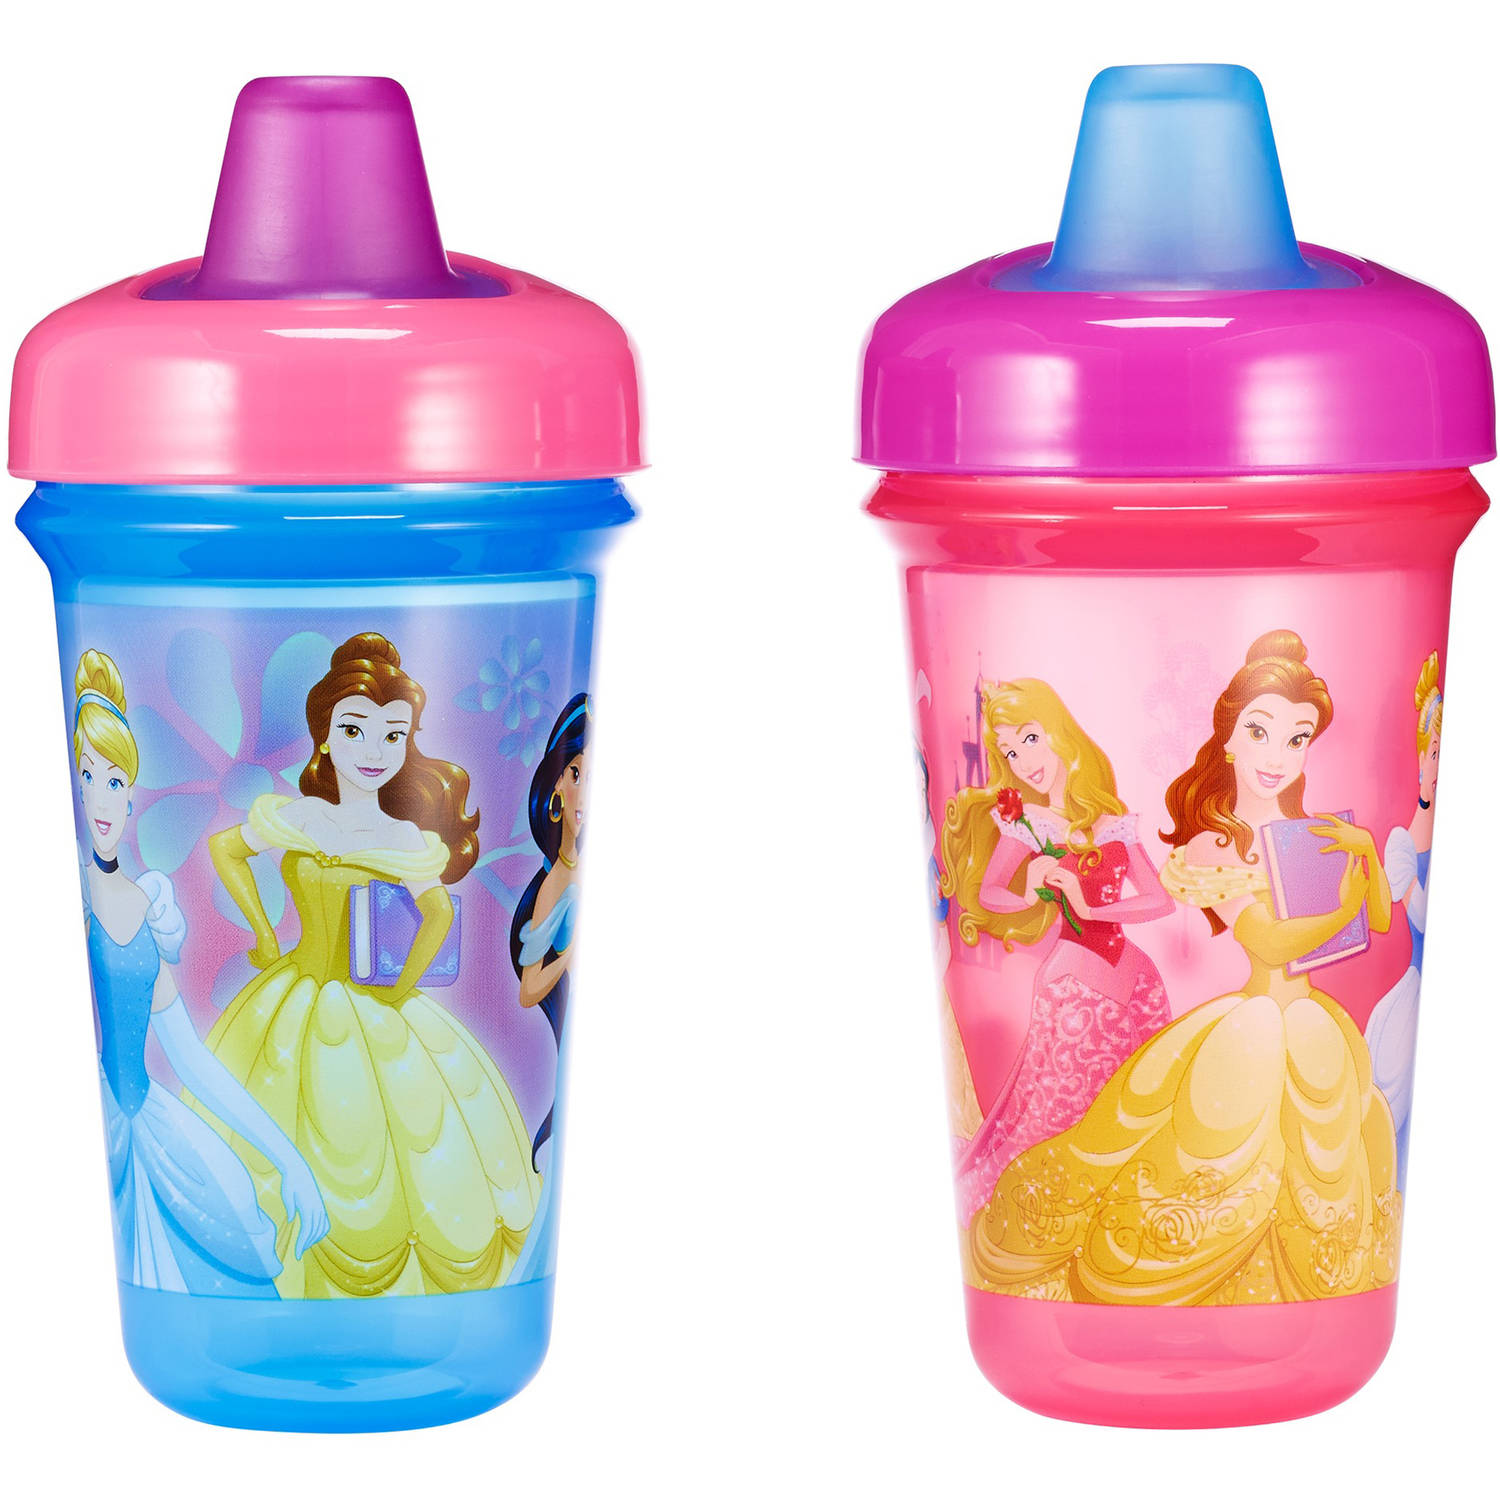 The First Years Disney Stackable Soft Spout Sippy Cup - Princess, 2 pack